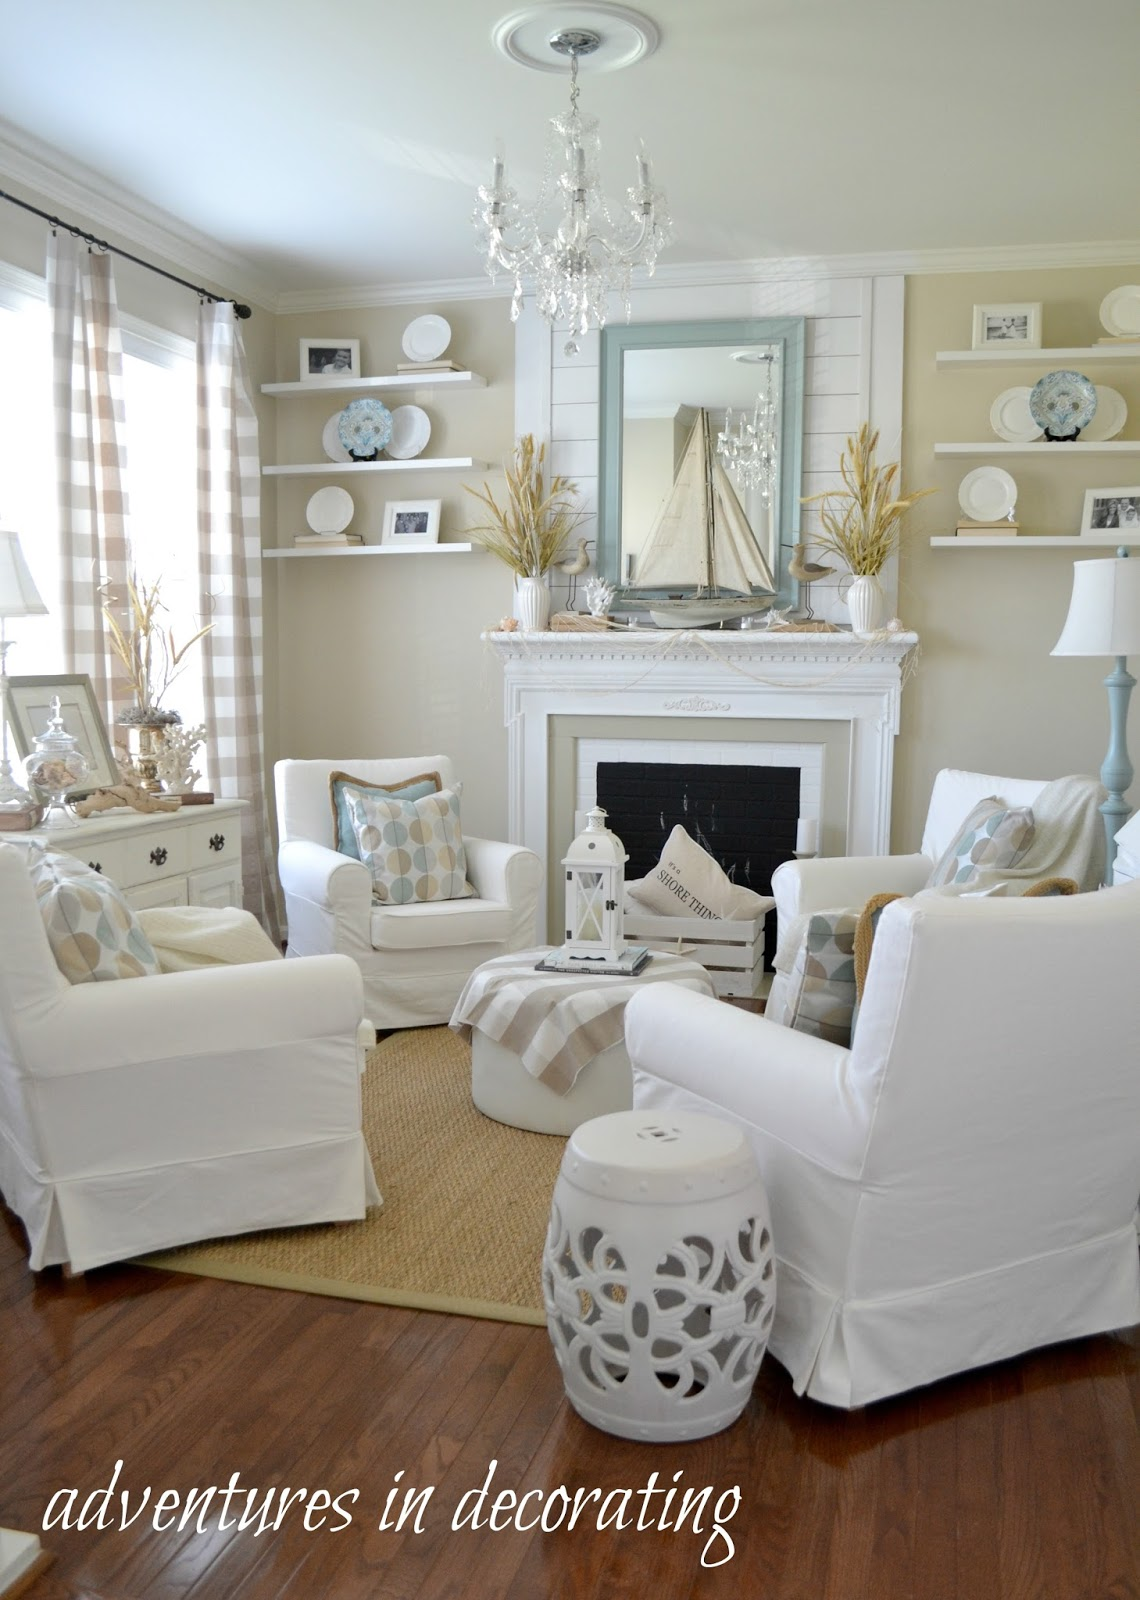 Adventures in decorating our coastal sitting room for Sitting decorating ideas